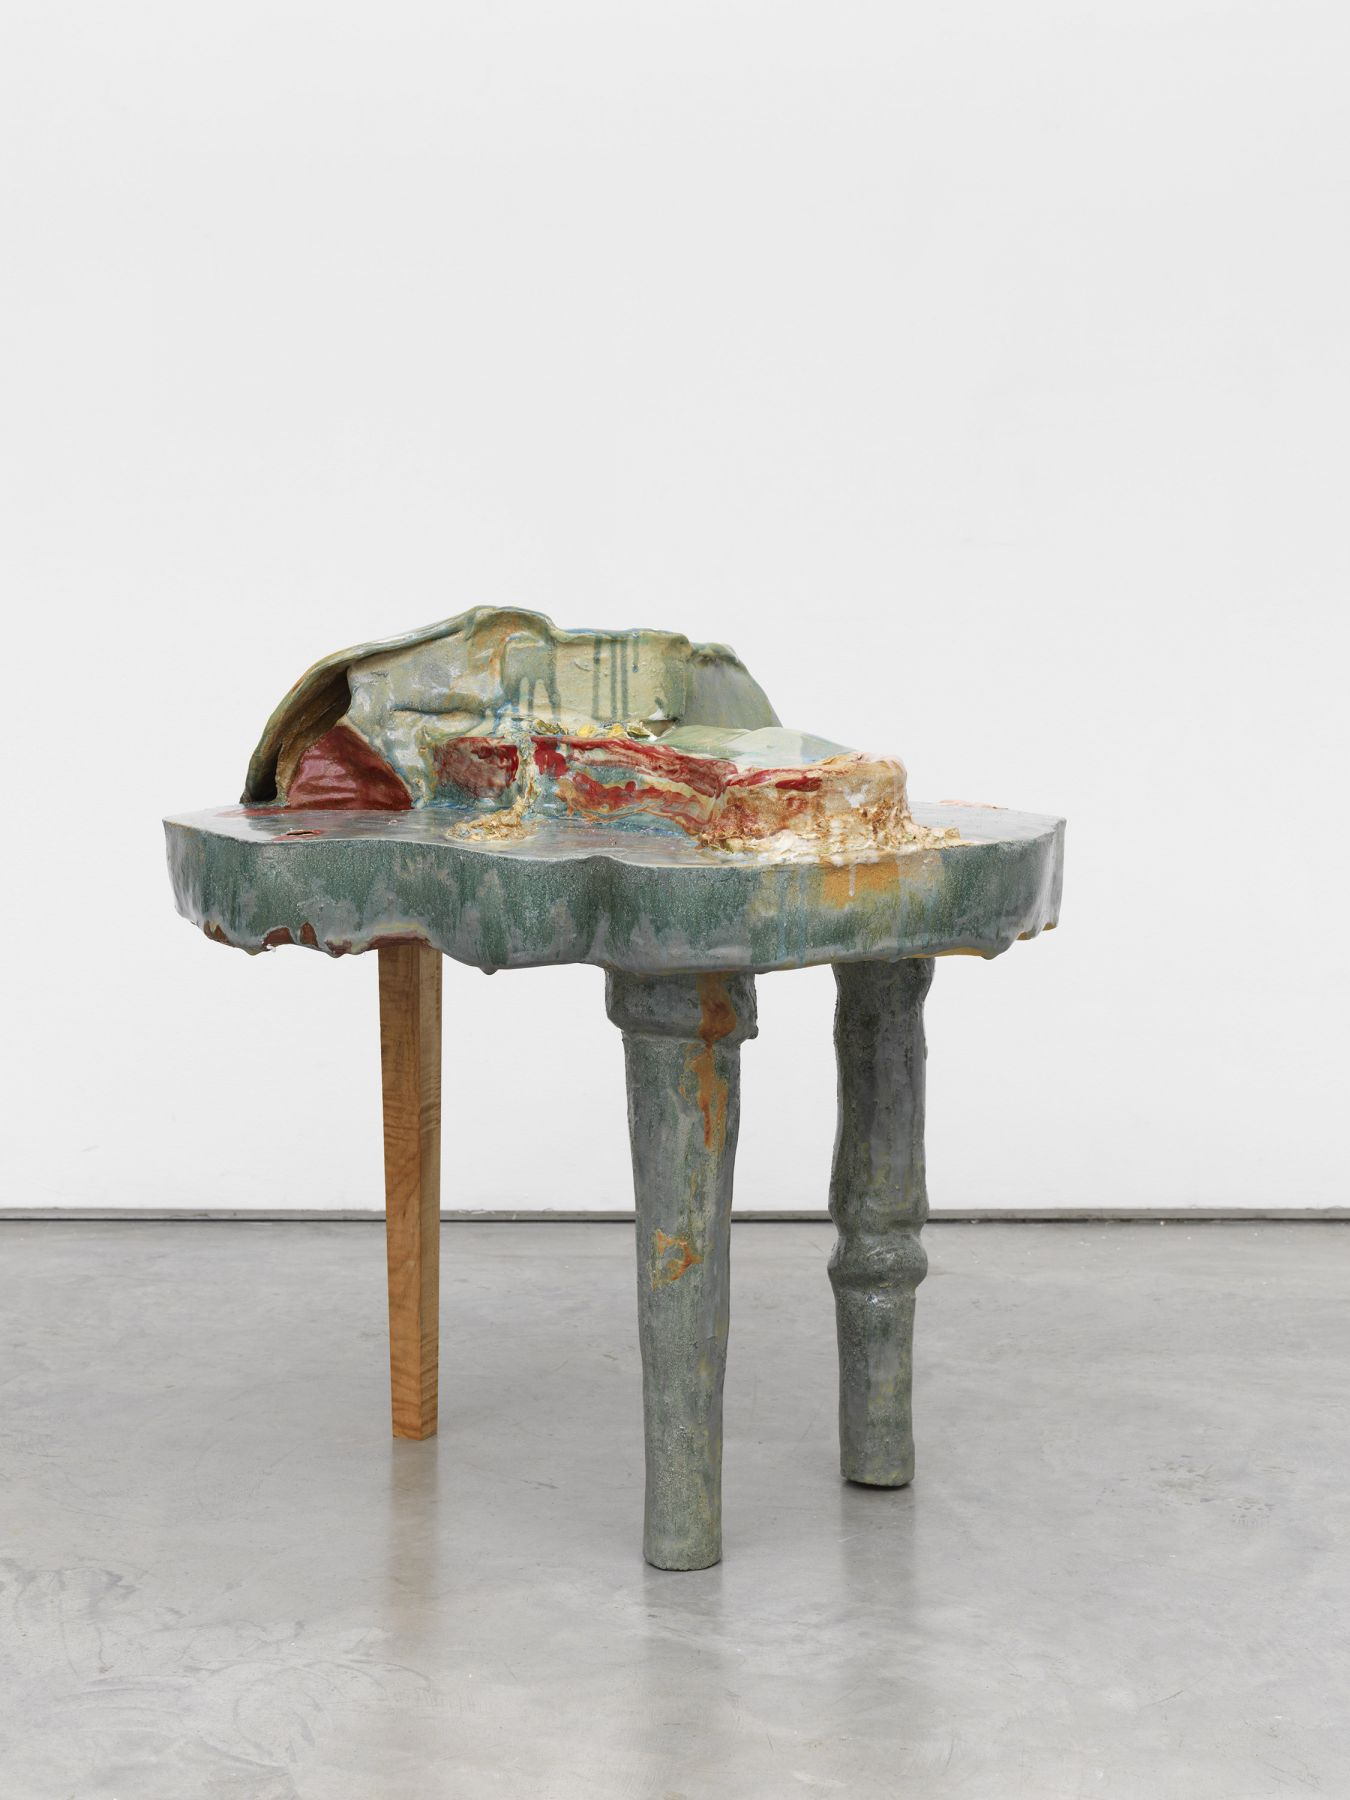 a contemporary ceramic artwork by jessica jackson hutchins for sale at marianne boesky gallery